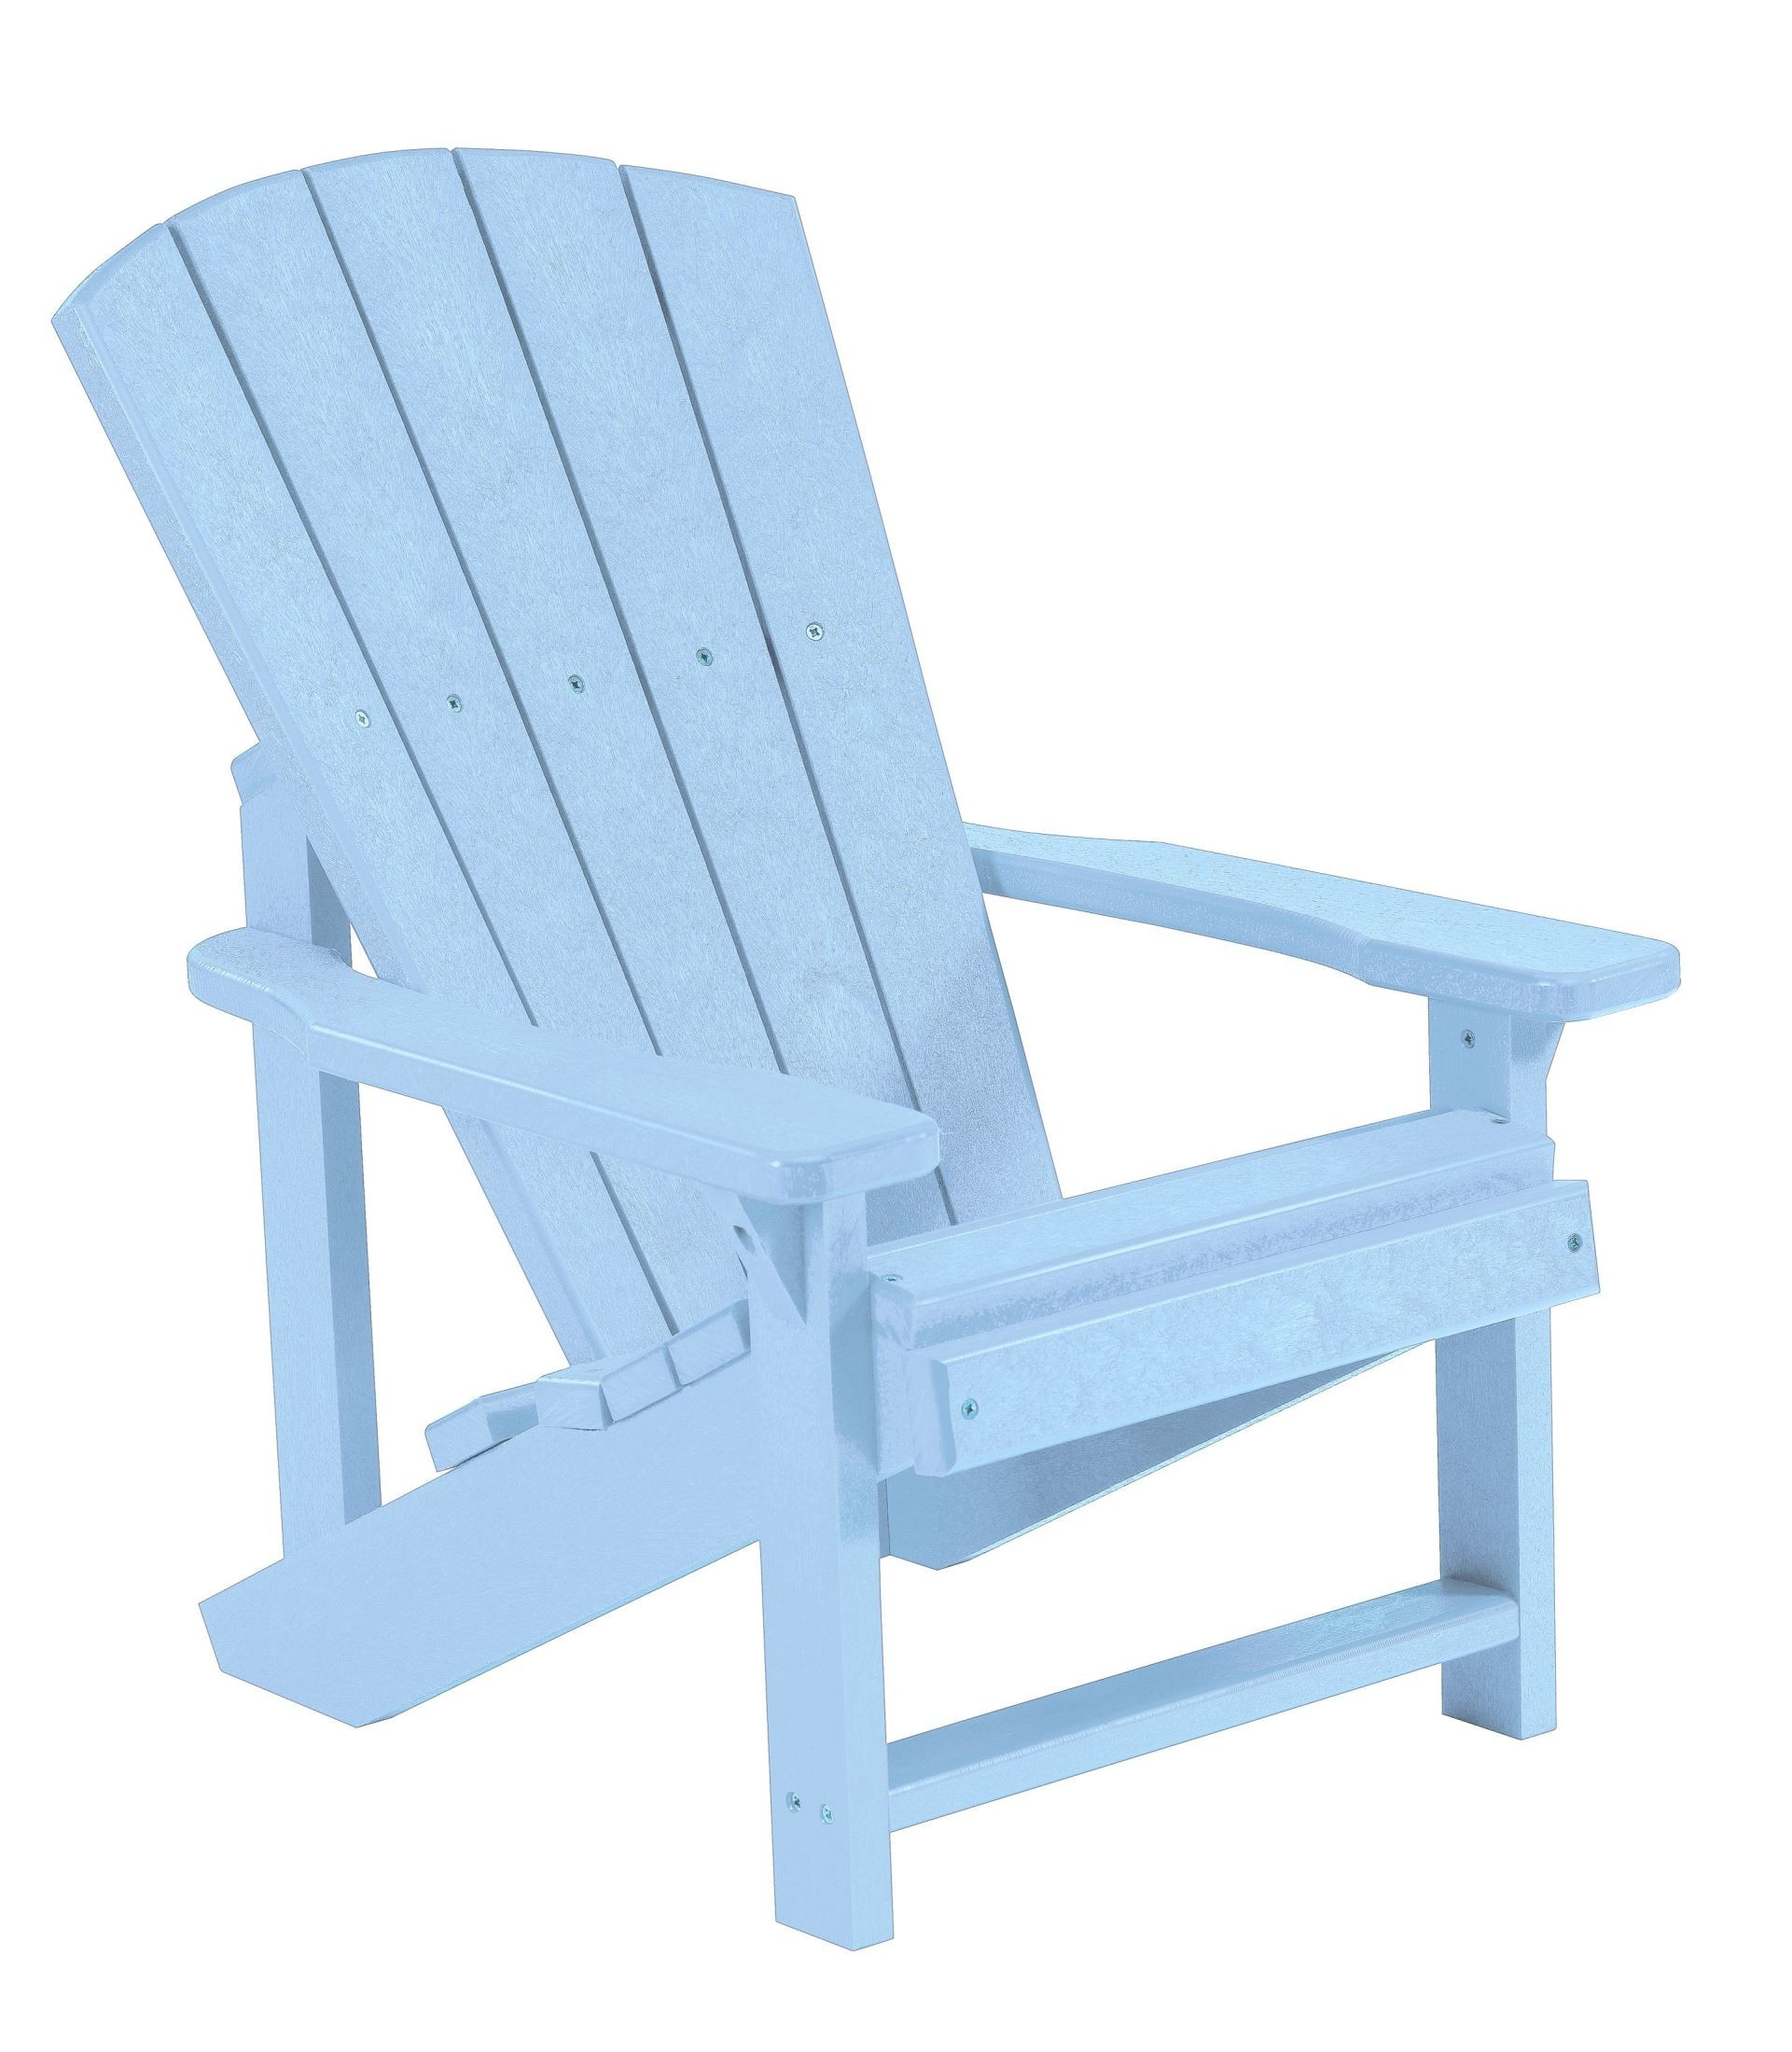 generations sky blue kids adirondack chair from cr plastic c08 12